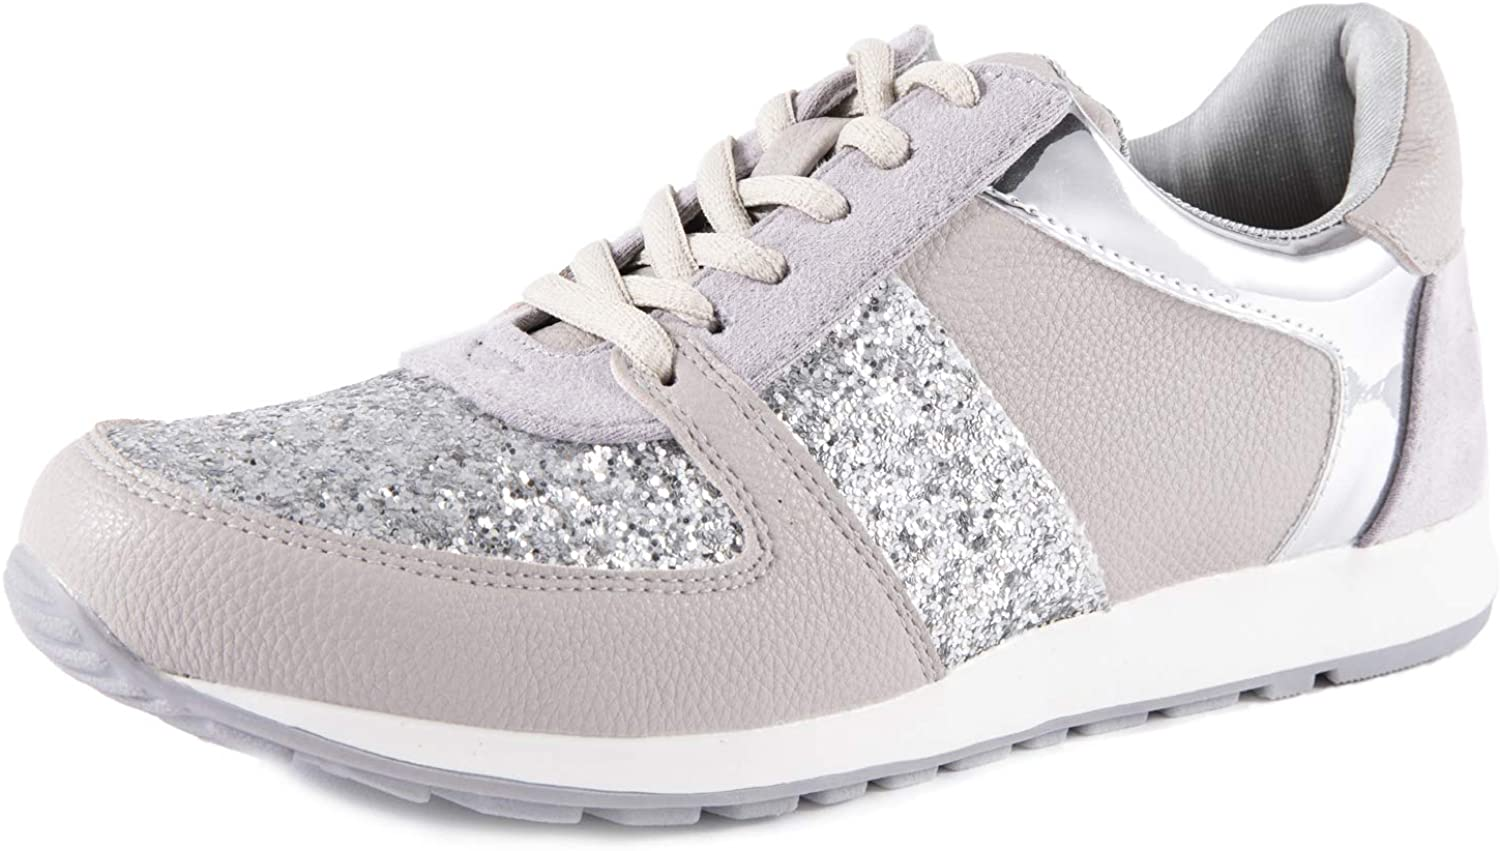 Feversole Women's Glitter Sneakers Fashion Bling Casual Shoes